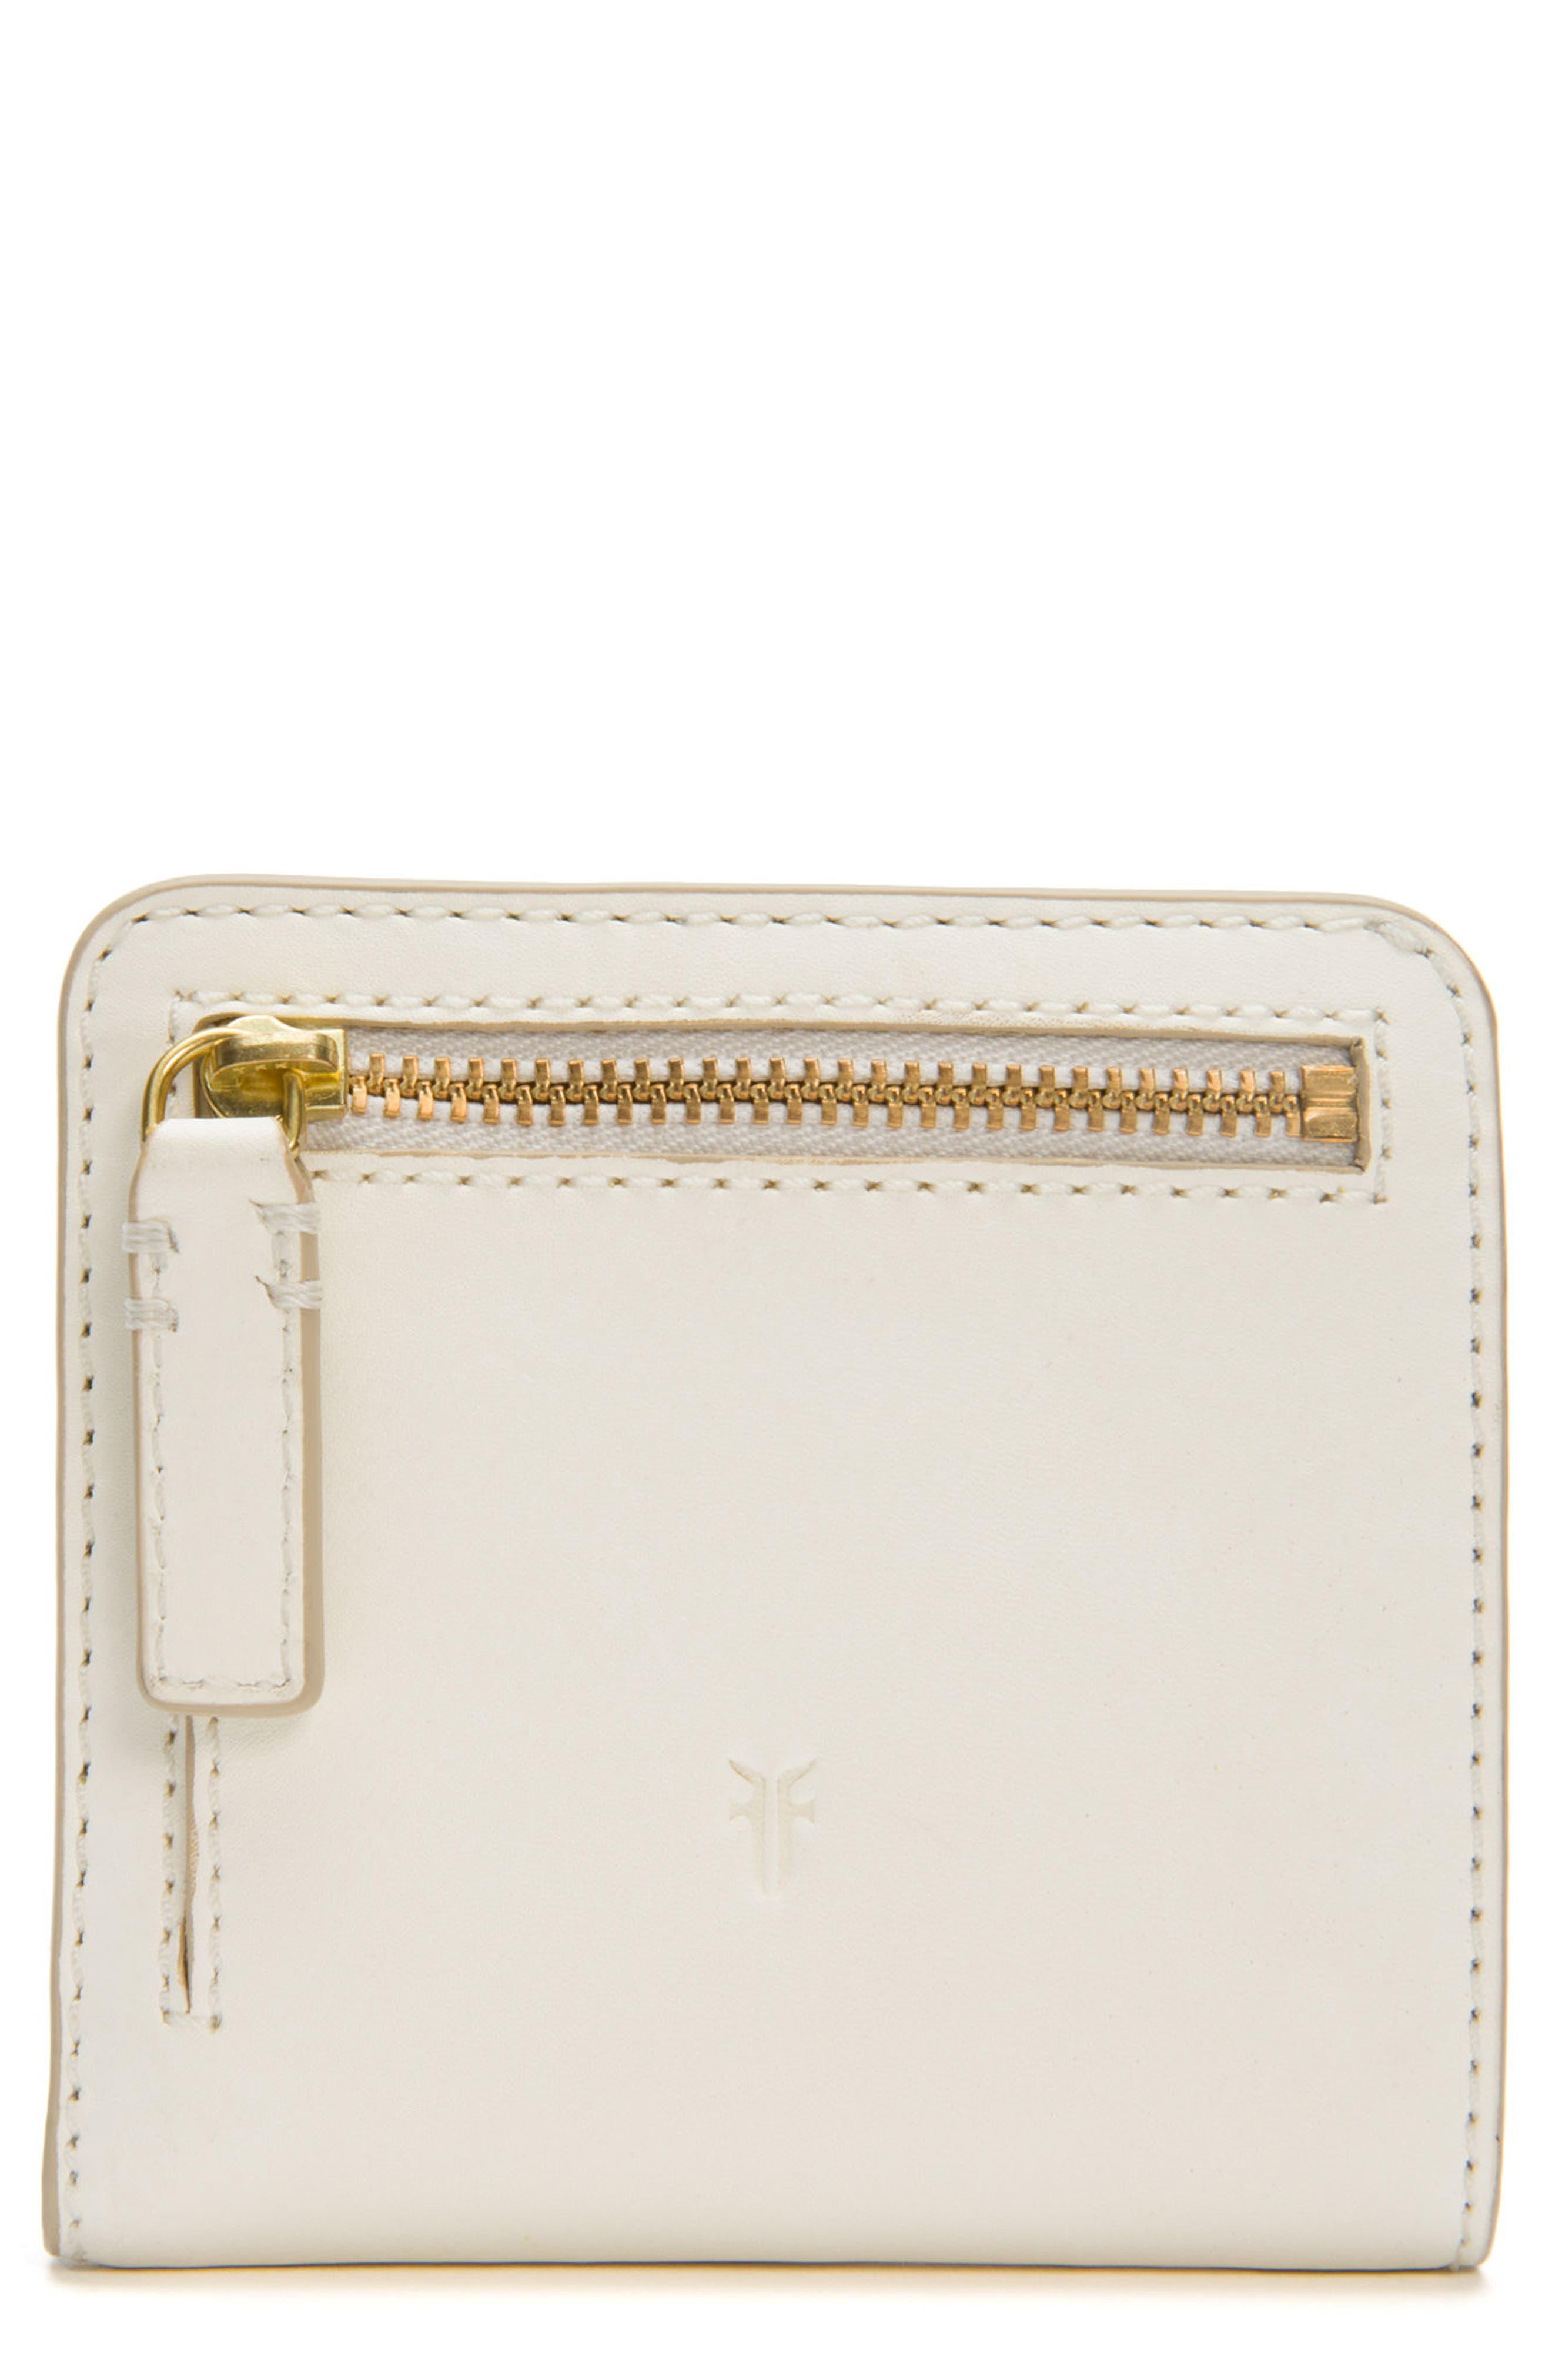 Carson Small Leather Wallet,                             Alternate thumbnail 4, color,                             White